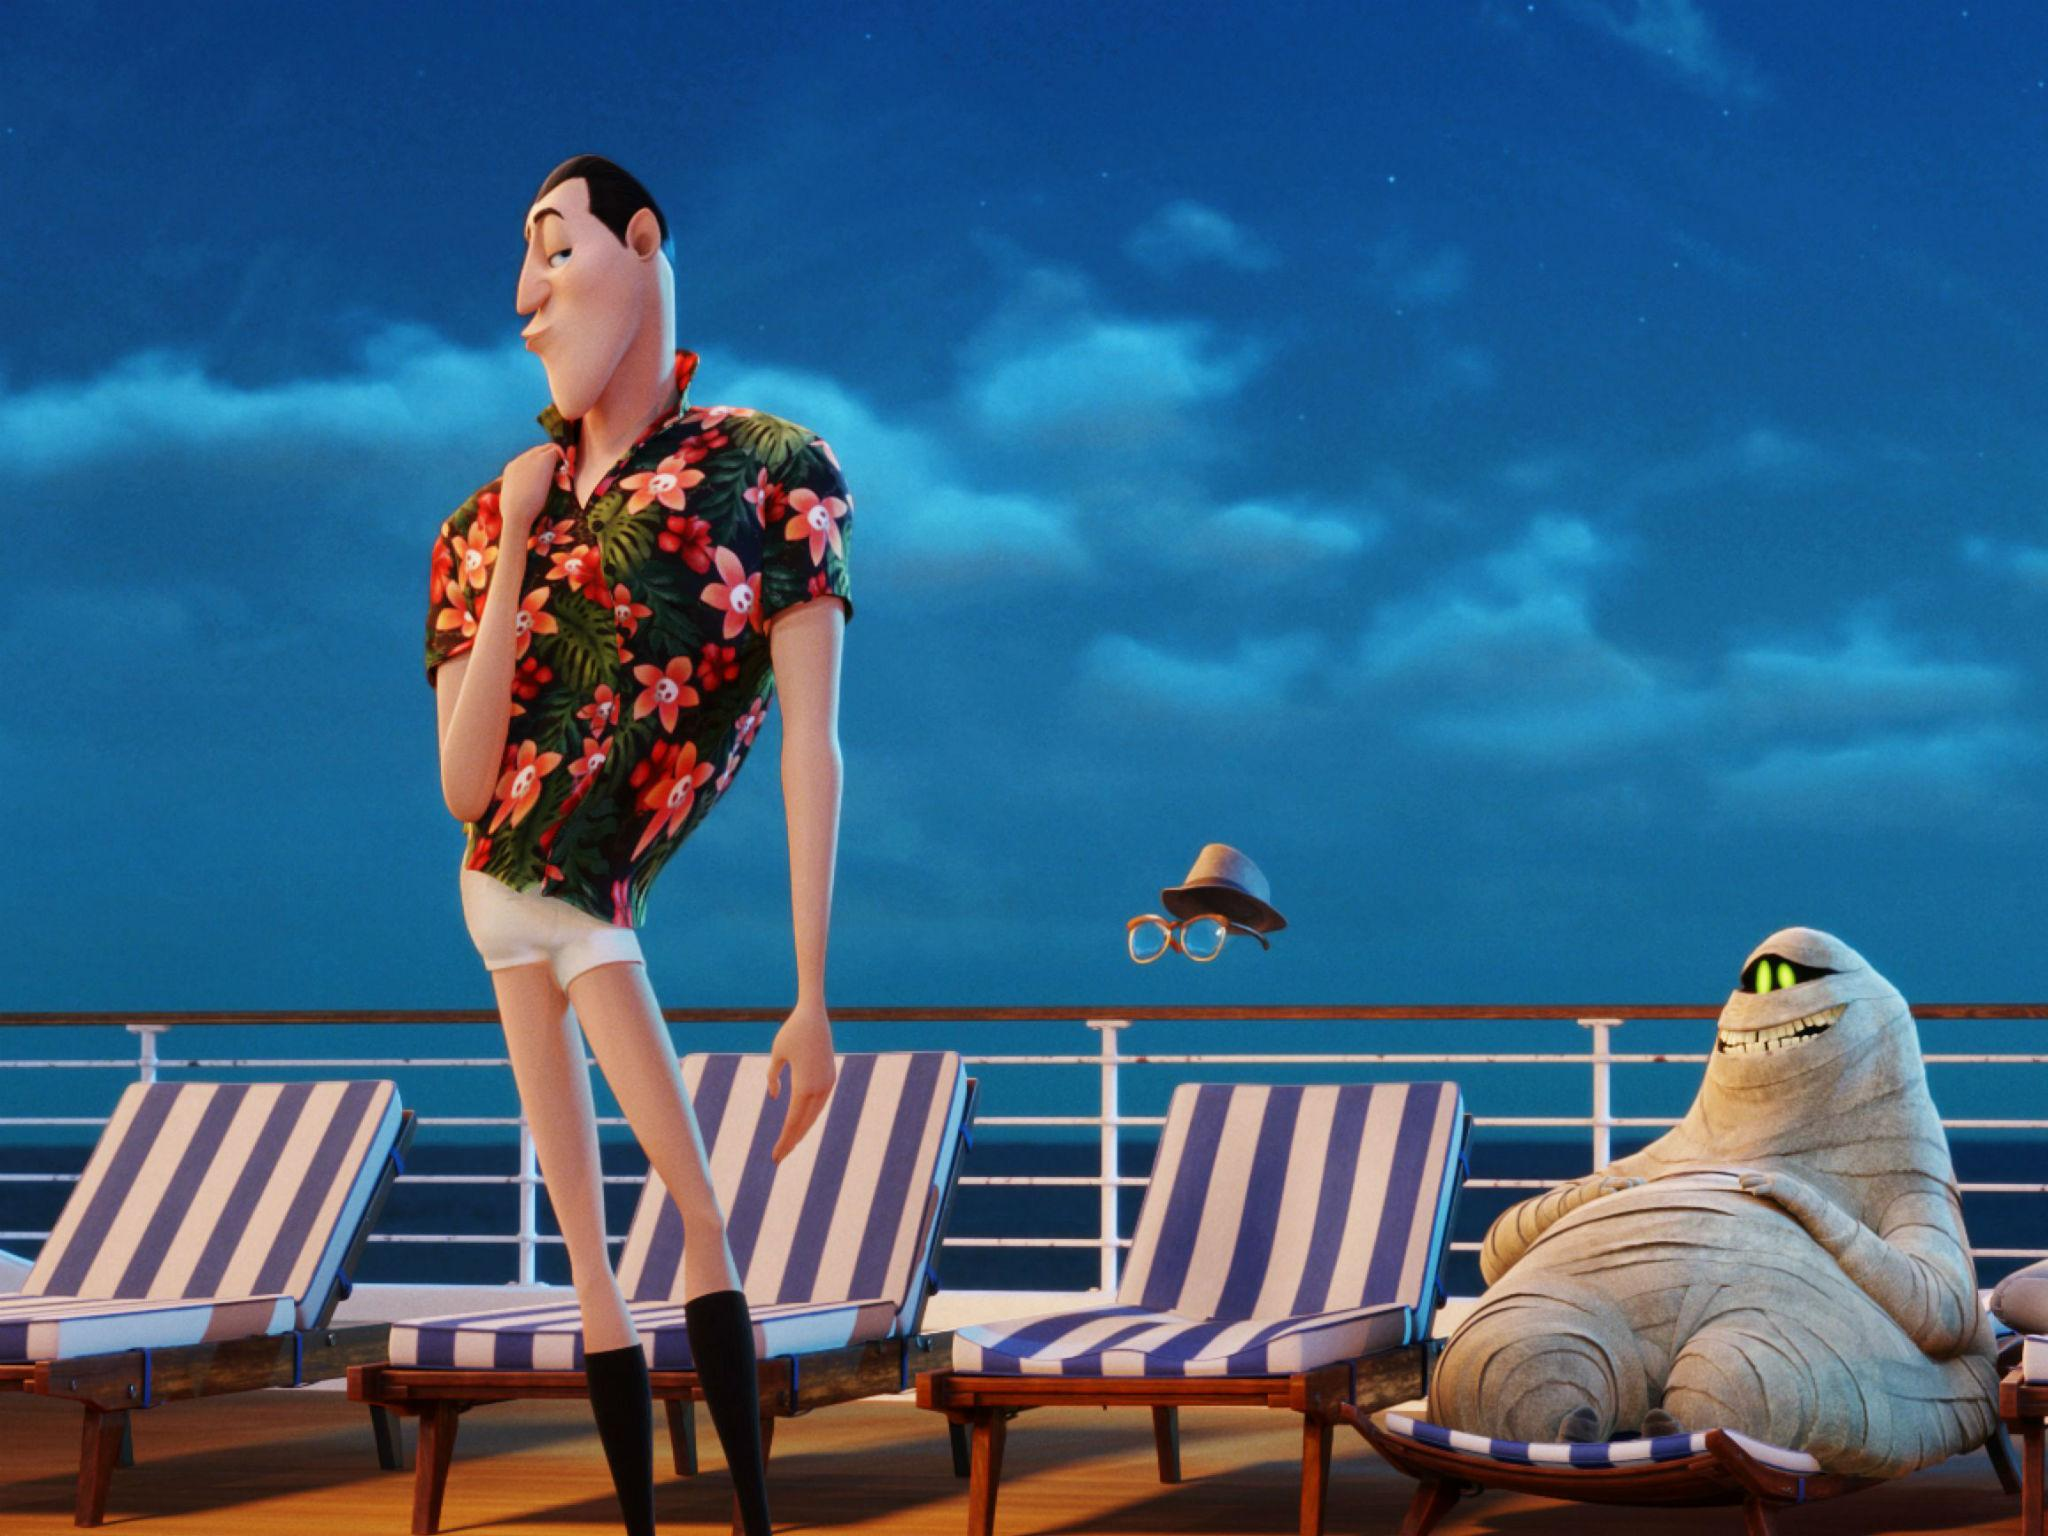 Hotel Transylvania 3 A Monster Vacation Review Big Sloppy Monster Mash Of A Sequel The